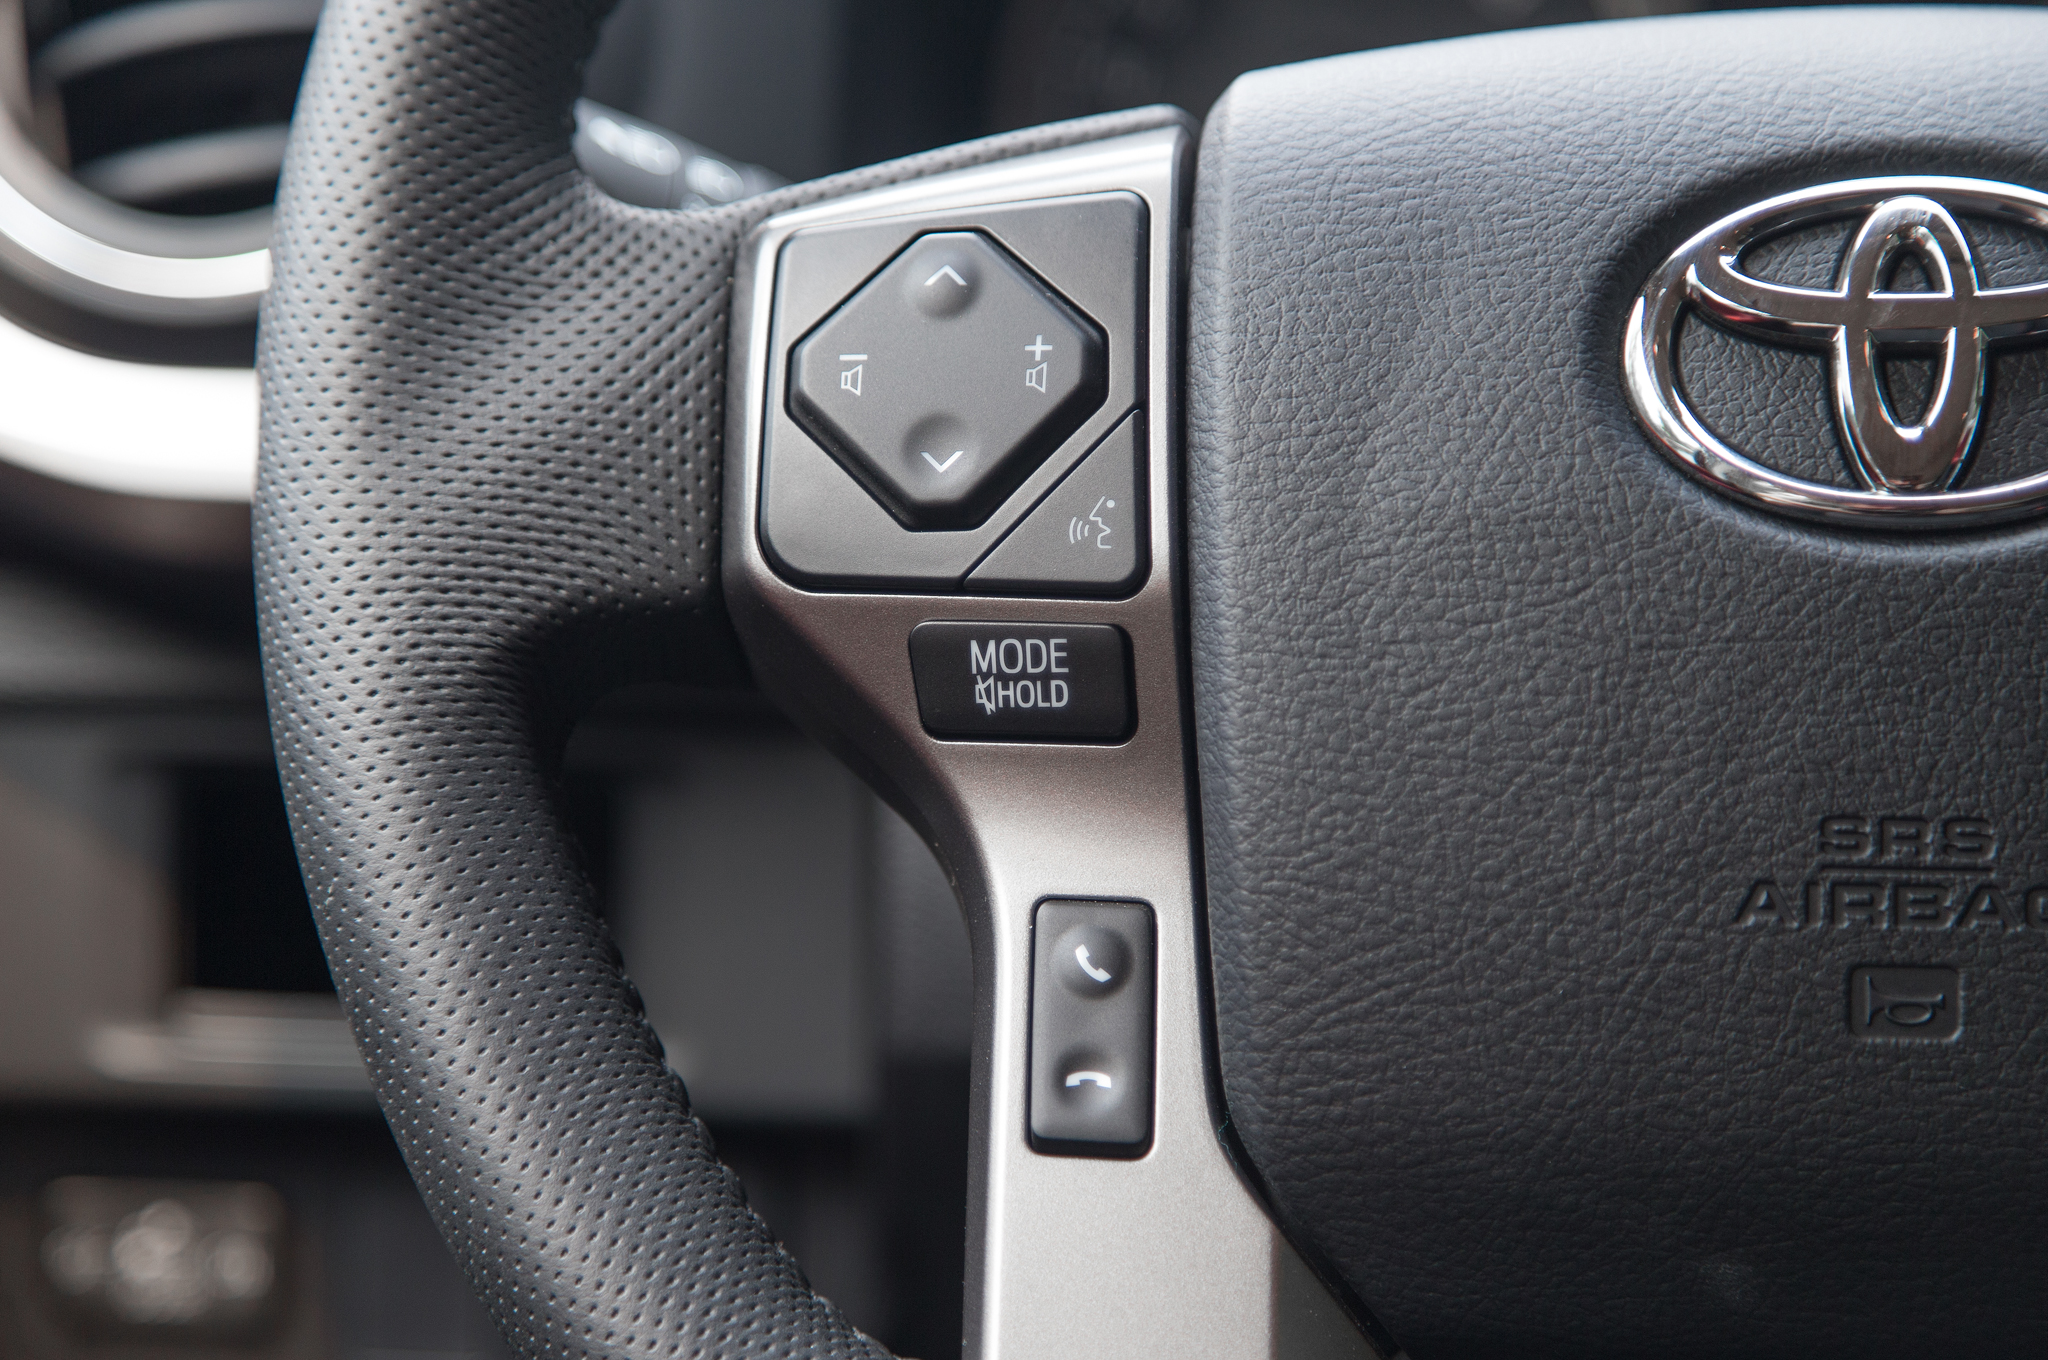 Toyota Sienna 2010-2018 Owners Manual: Driving in vehicle-to-vehicle distance control mode